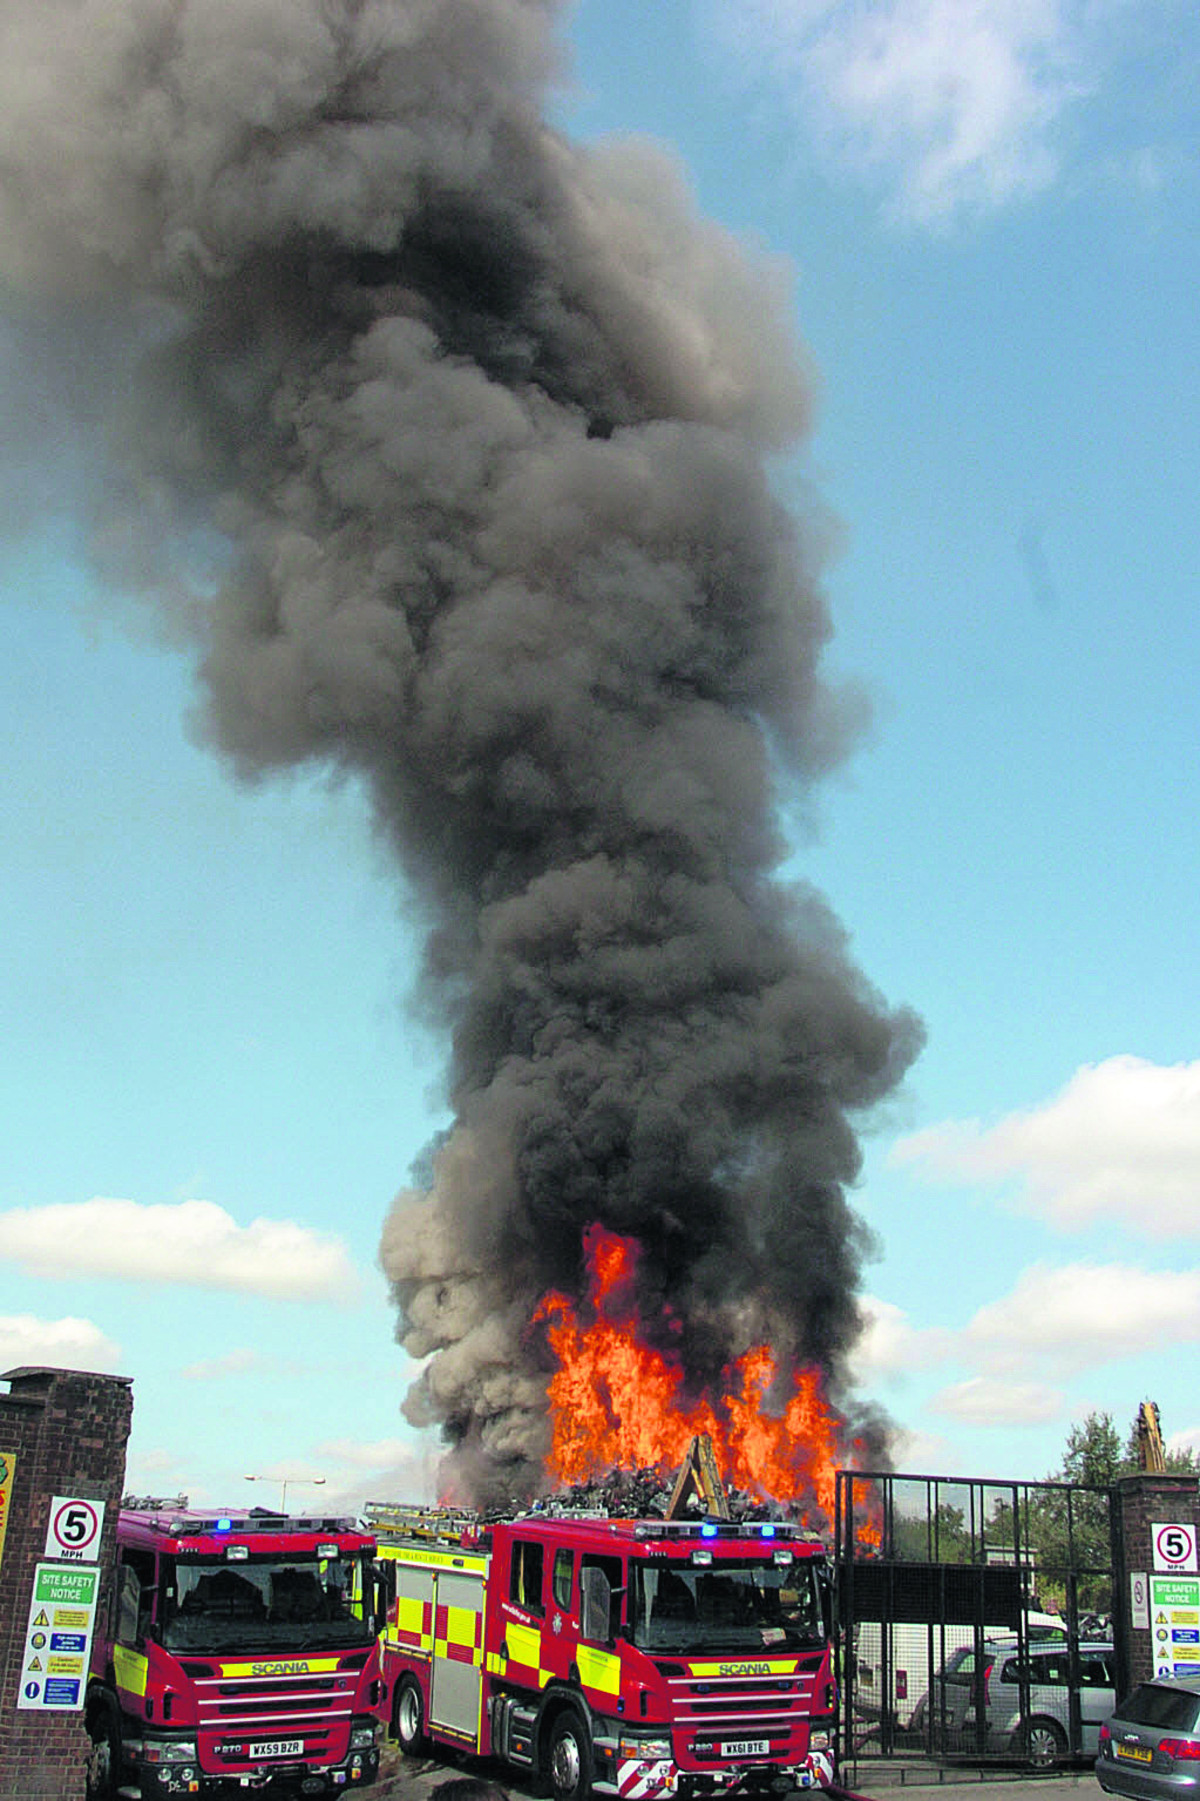 Trowbridge fire crews suspend strike action to quell scrapyard blaze